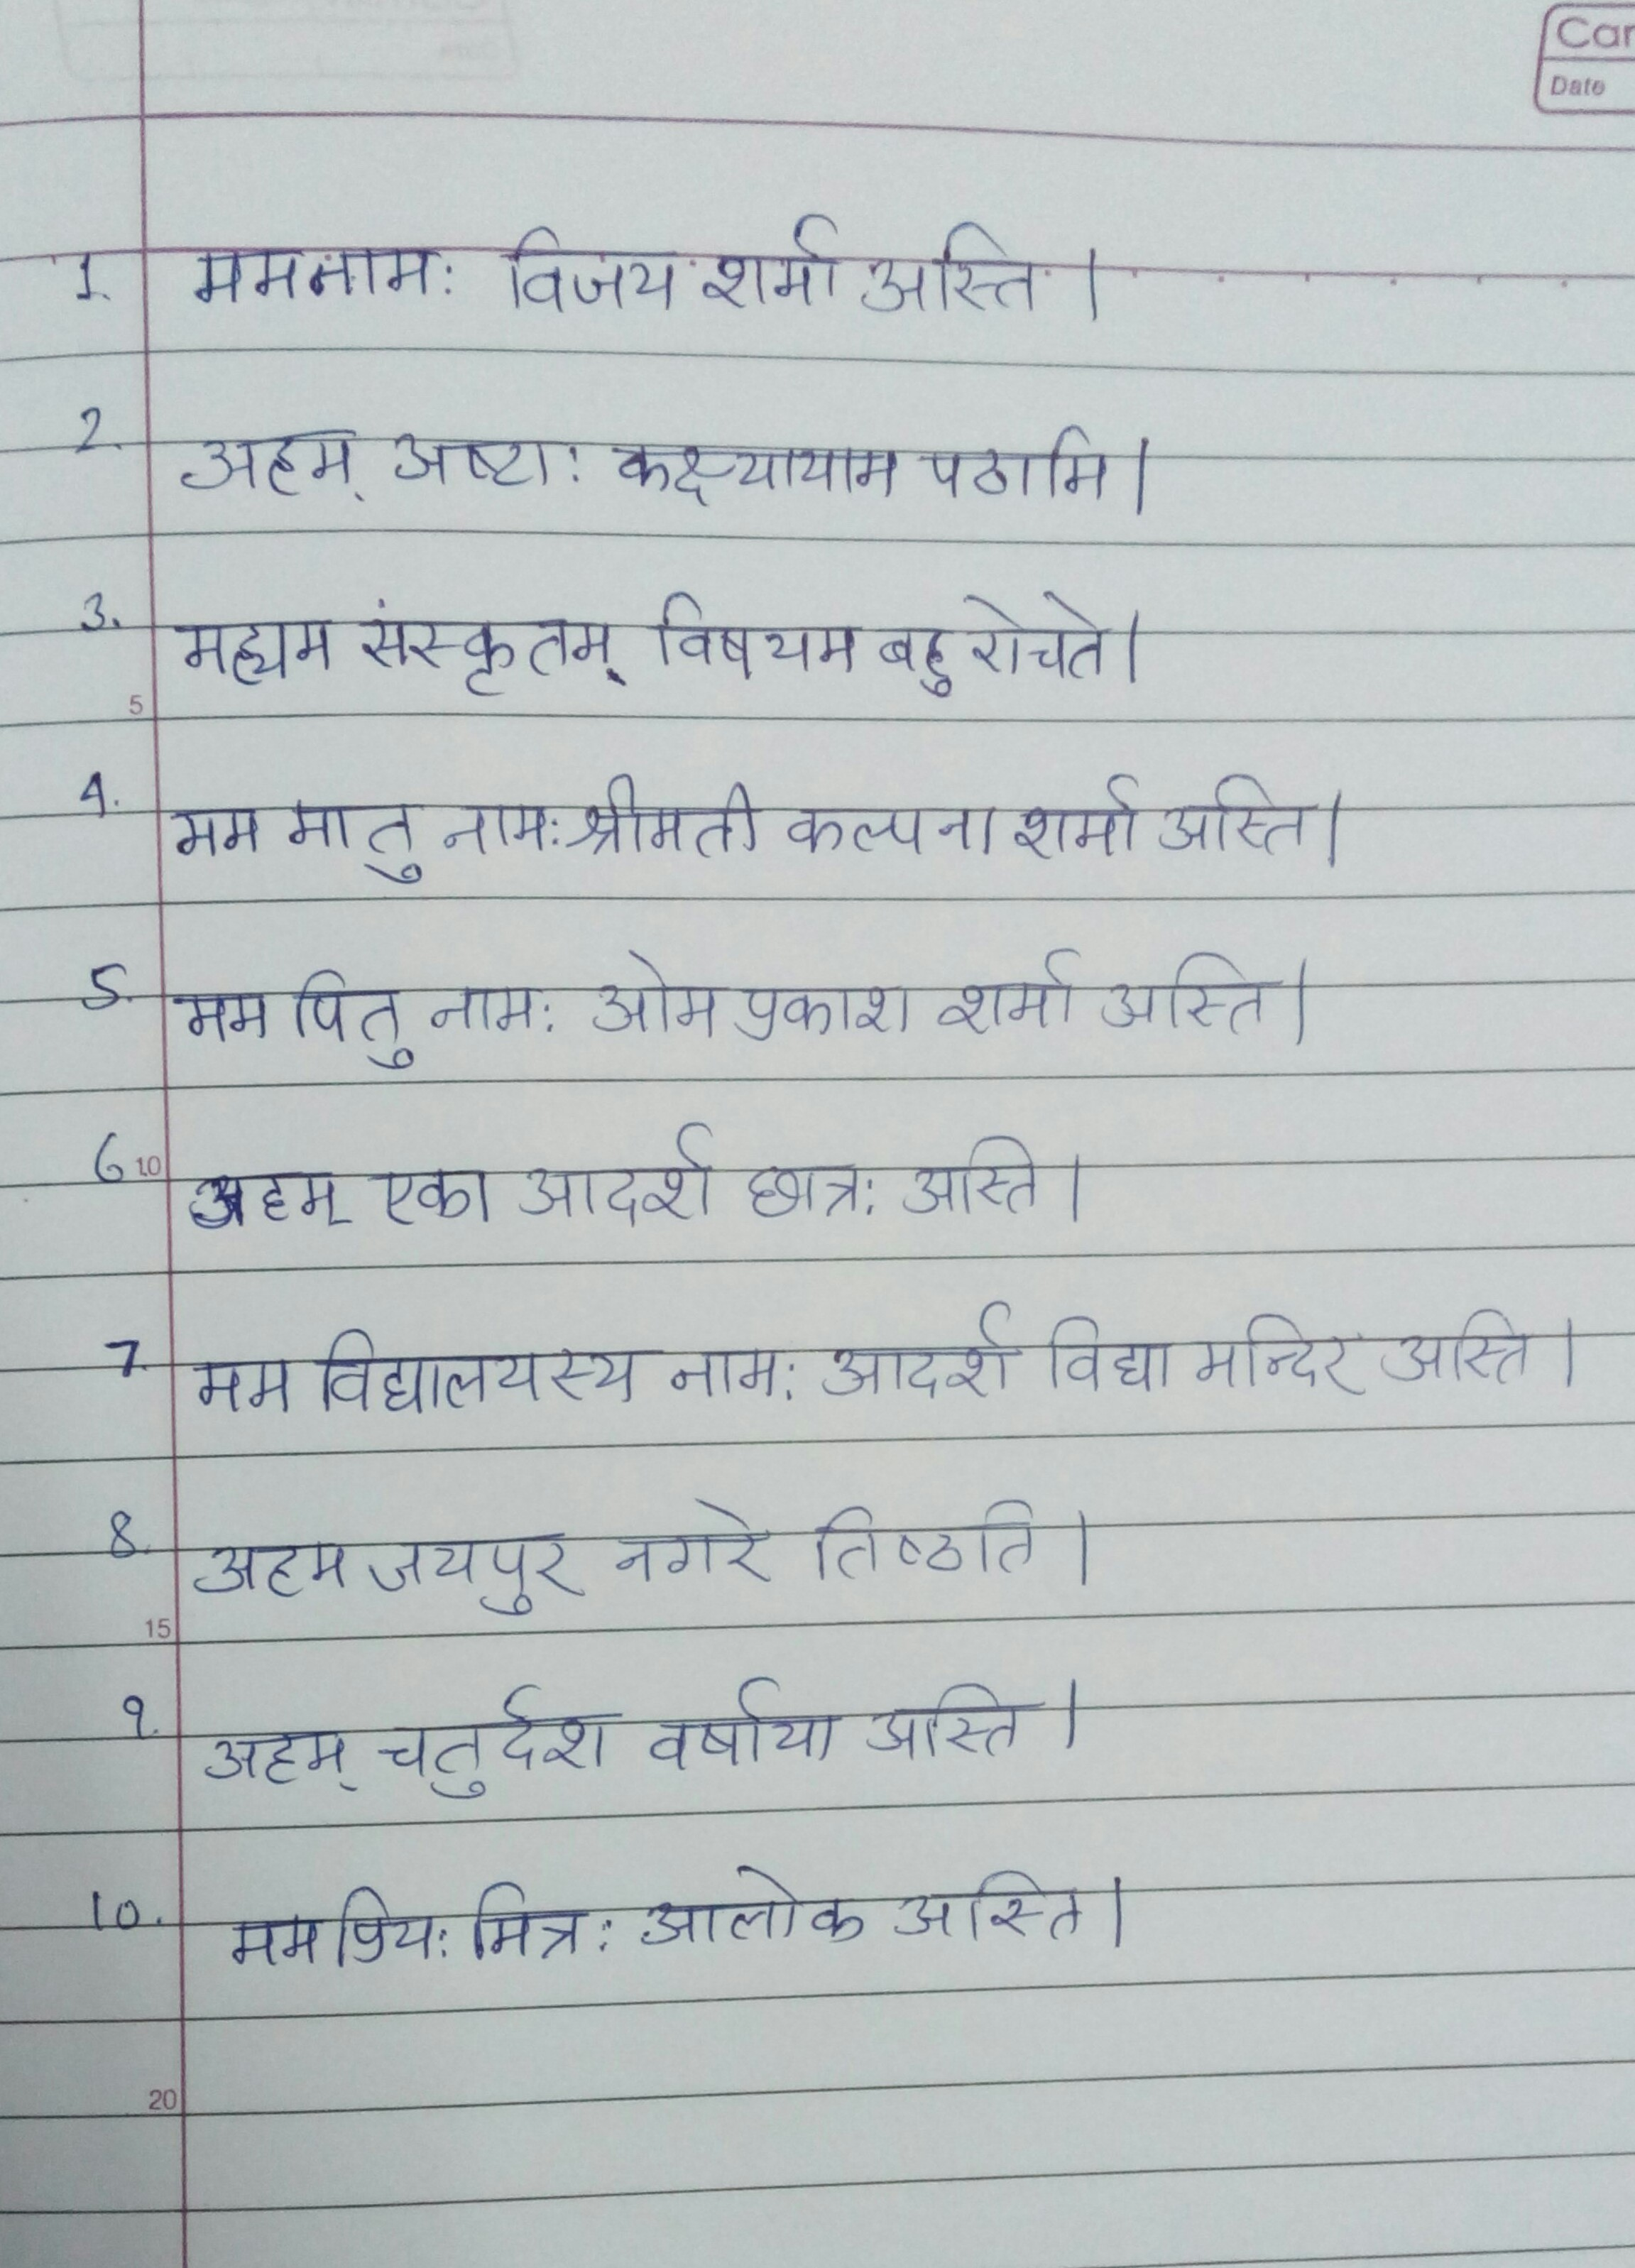 my self in sanskrit language My self in sanskrit language sanskrit (/ˈsænskrɪt/ संस्कृतम् saṃskṛtam [səmskr̩t̪əm], originally संस्कृता वाक् saṃskṛtā vāk, refined speech) is a historical indo-aryan language, the primary liturgical language of hinduism and a literary and scholarly language in buddhism and jainism.